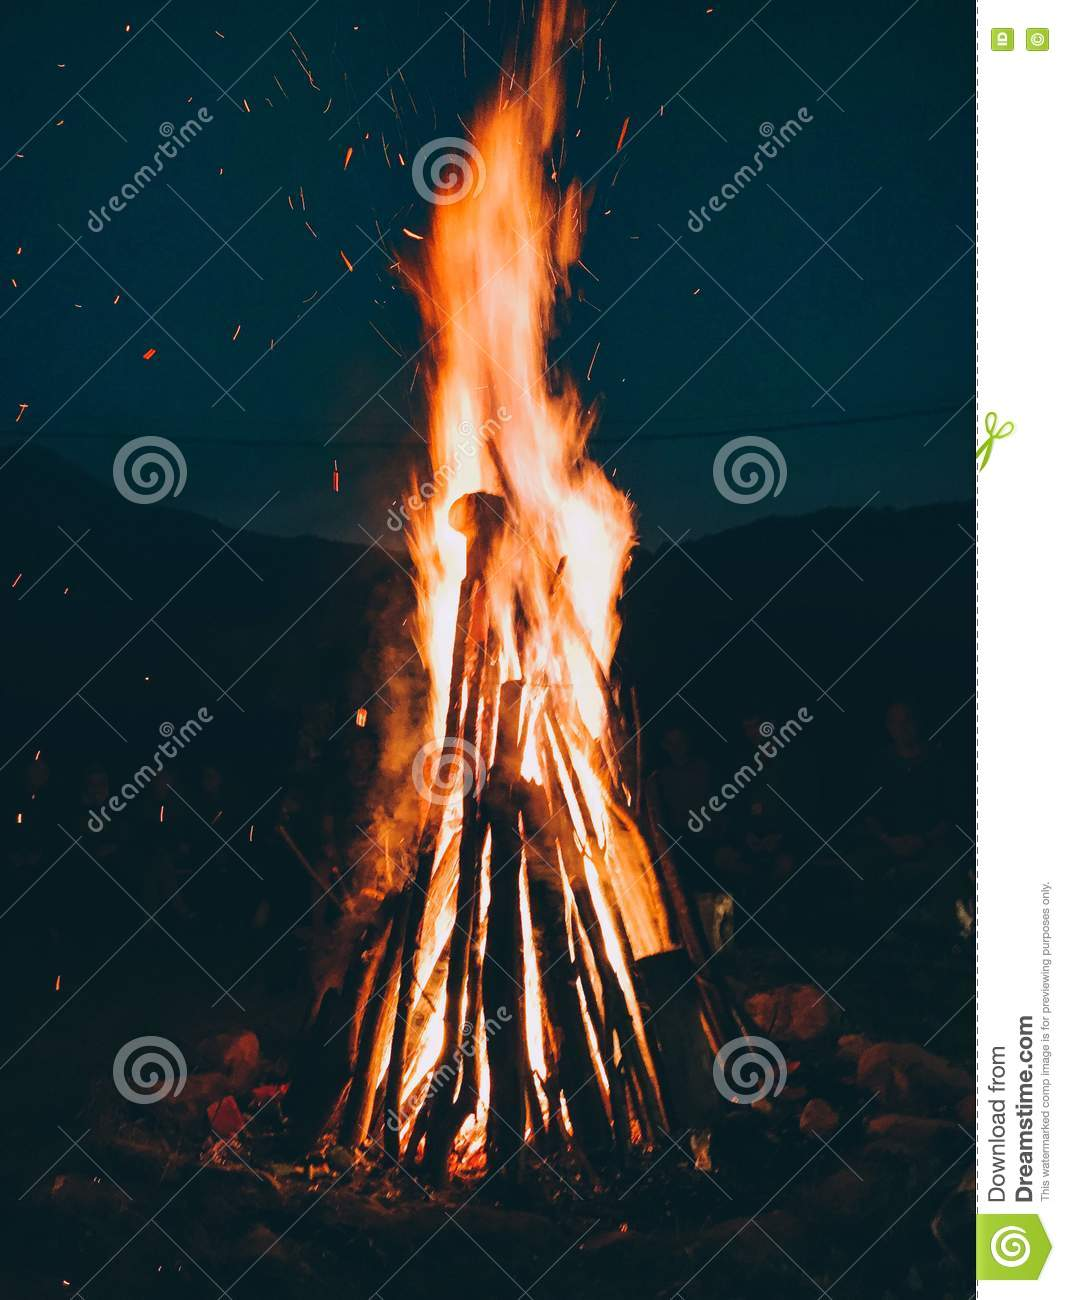 Fire Wood Hipster Iphone Wallpaper Camp Mountains Travel Holiday Hills Forest Night Stars Flame Rocks Indie